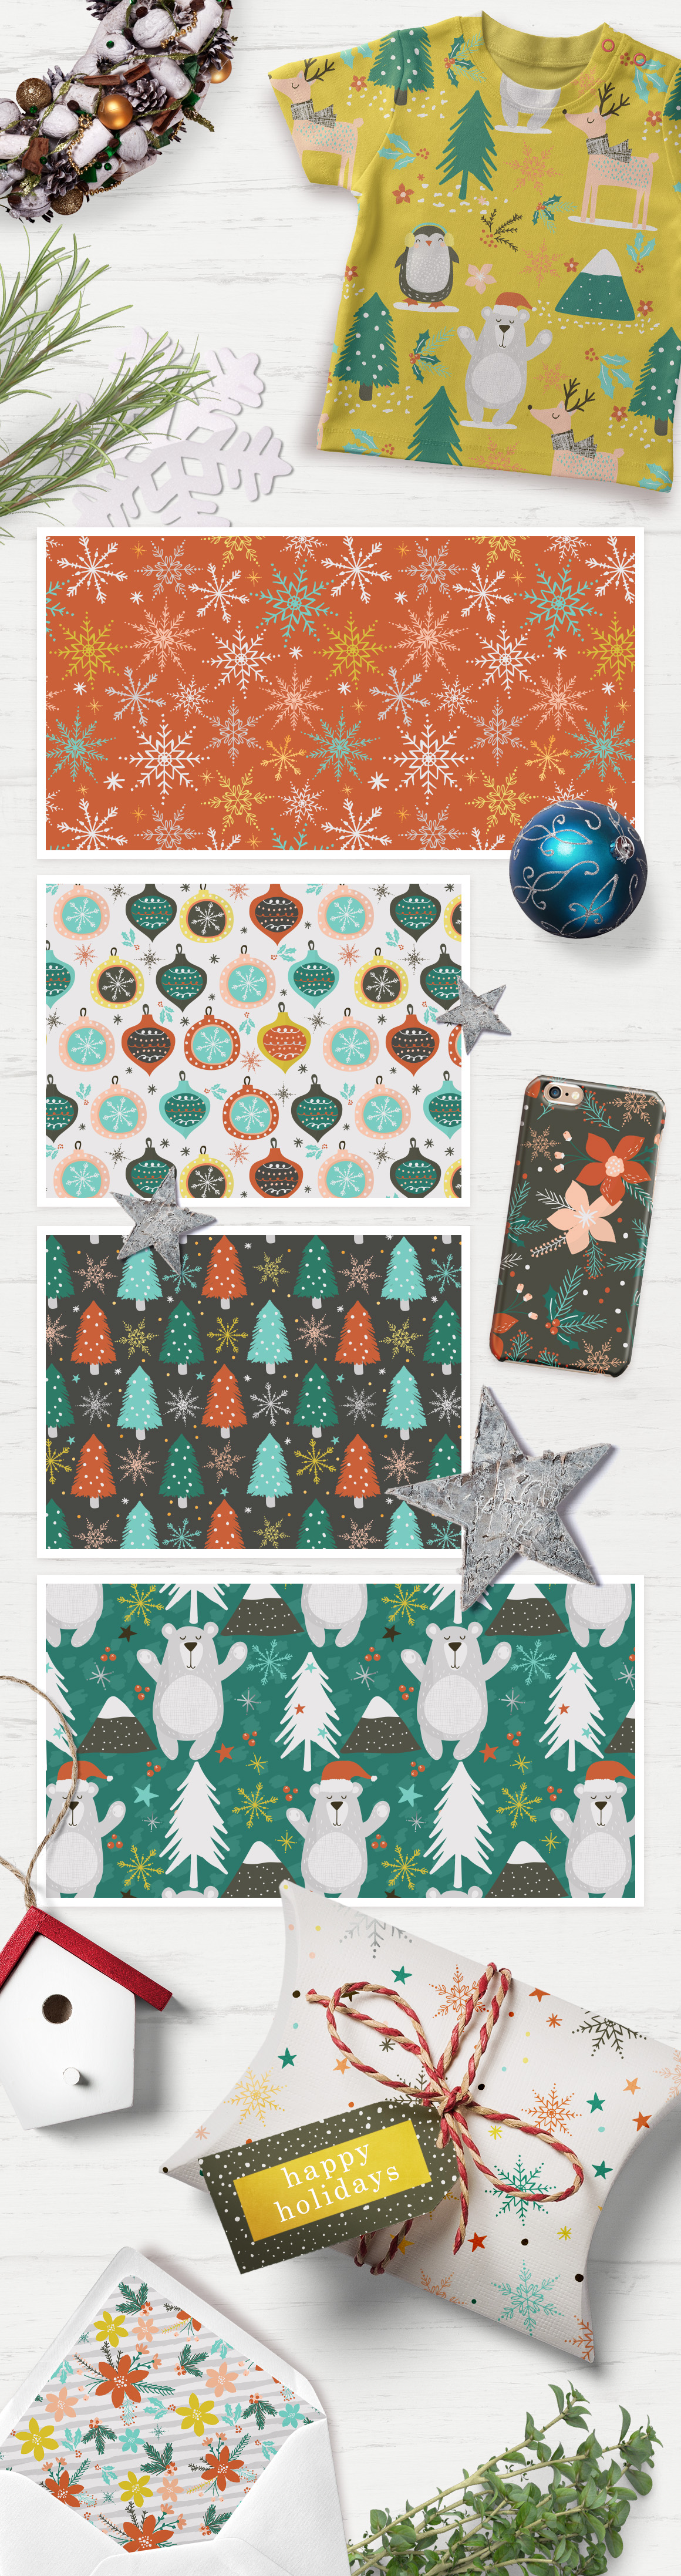 Sweet Christmas Collections example image 2